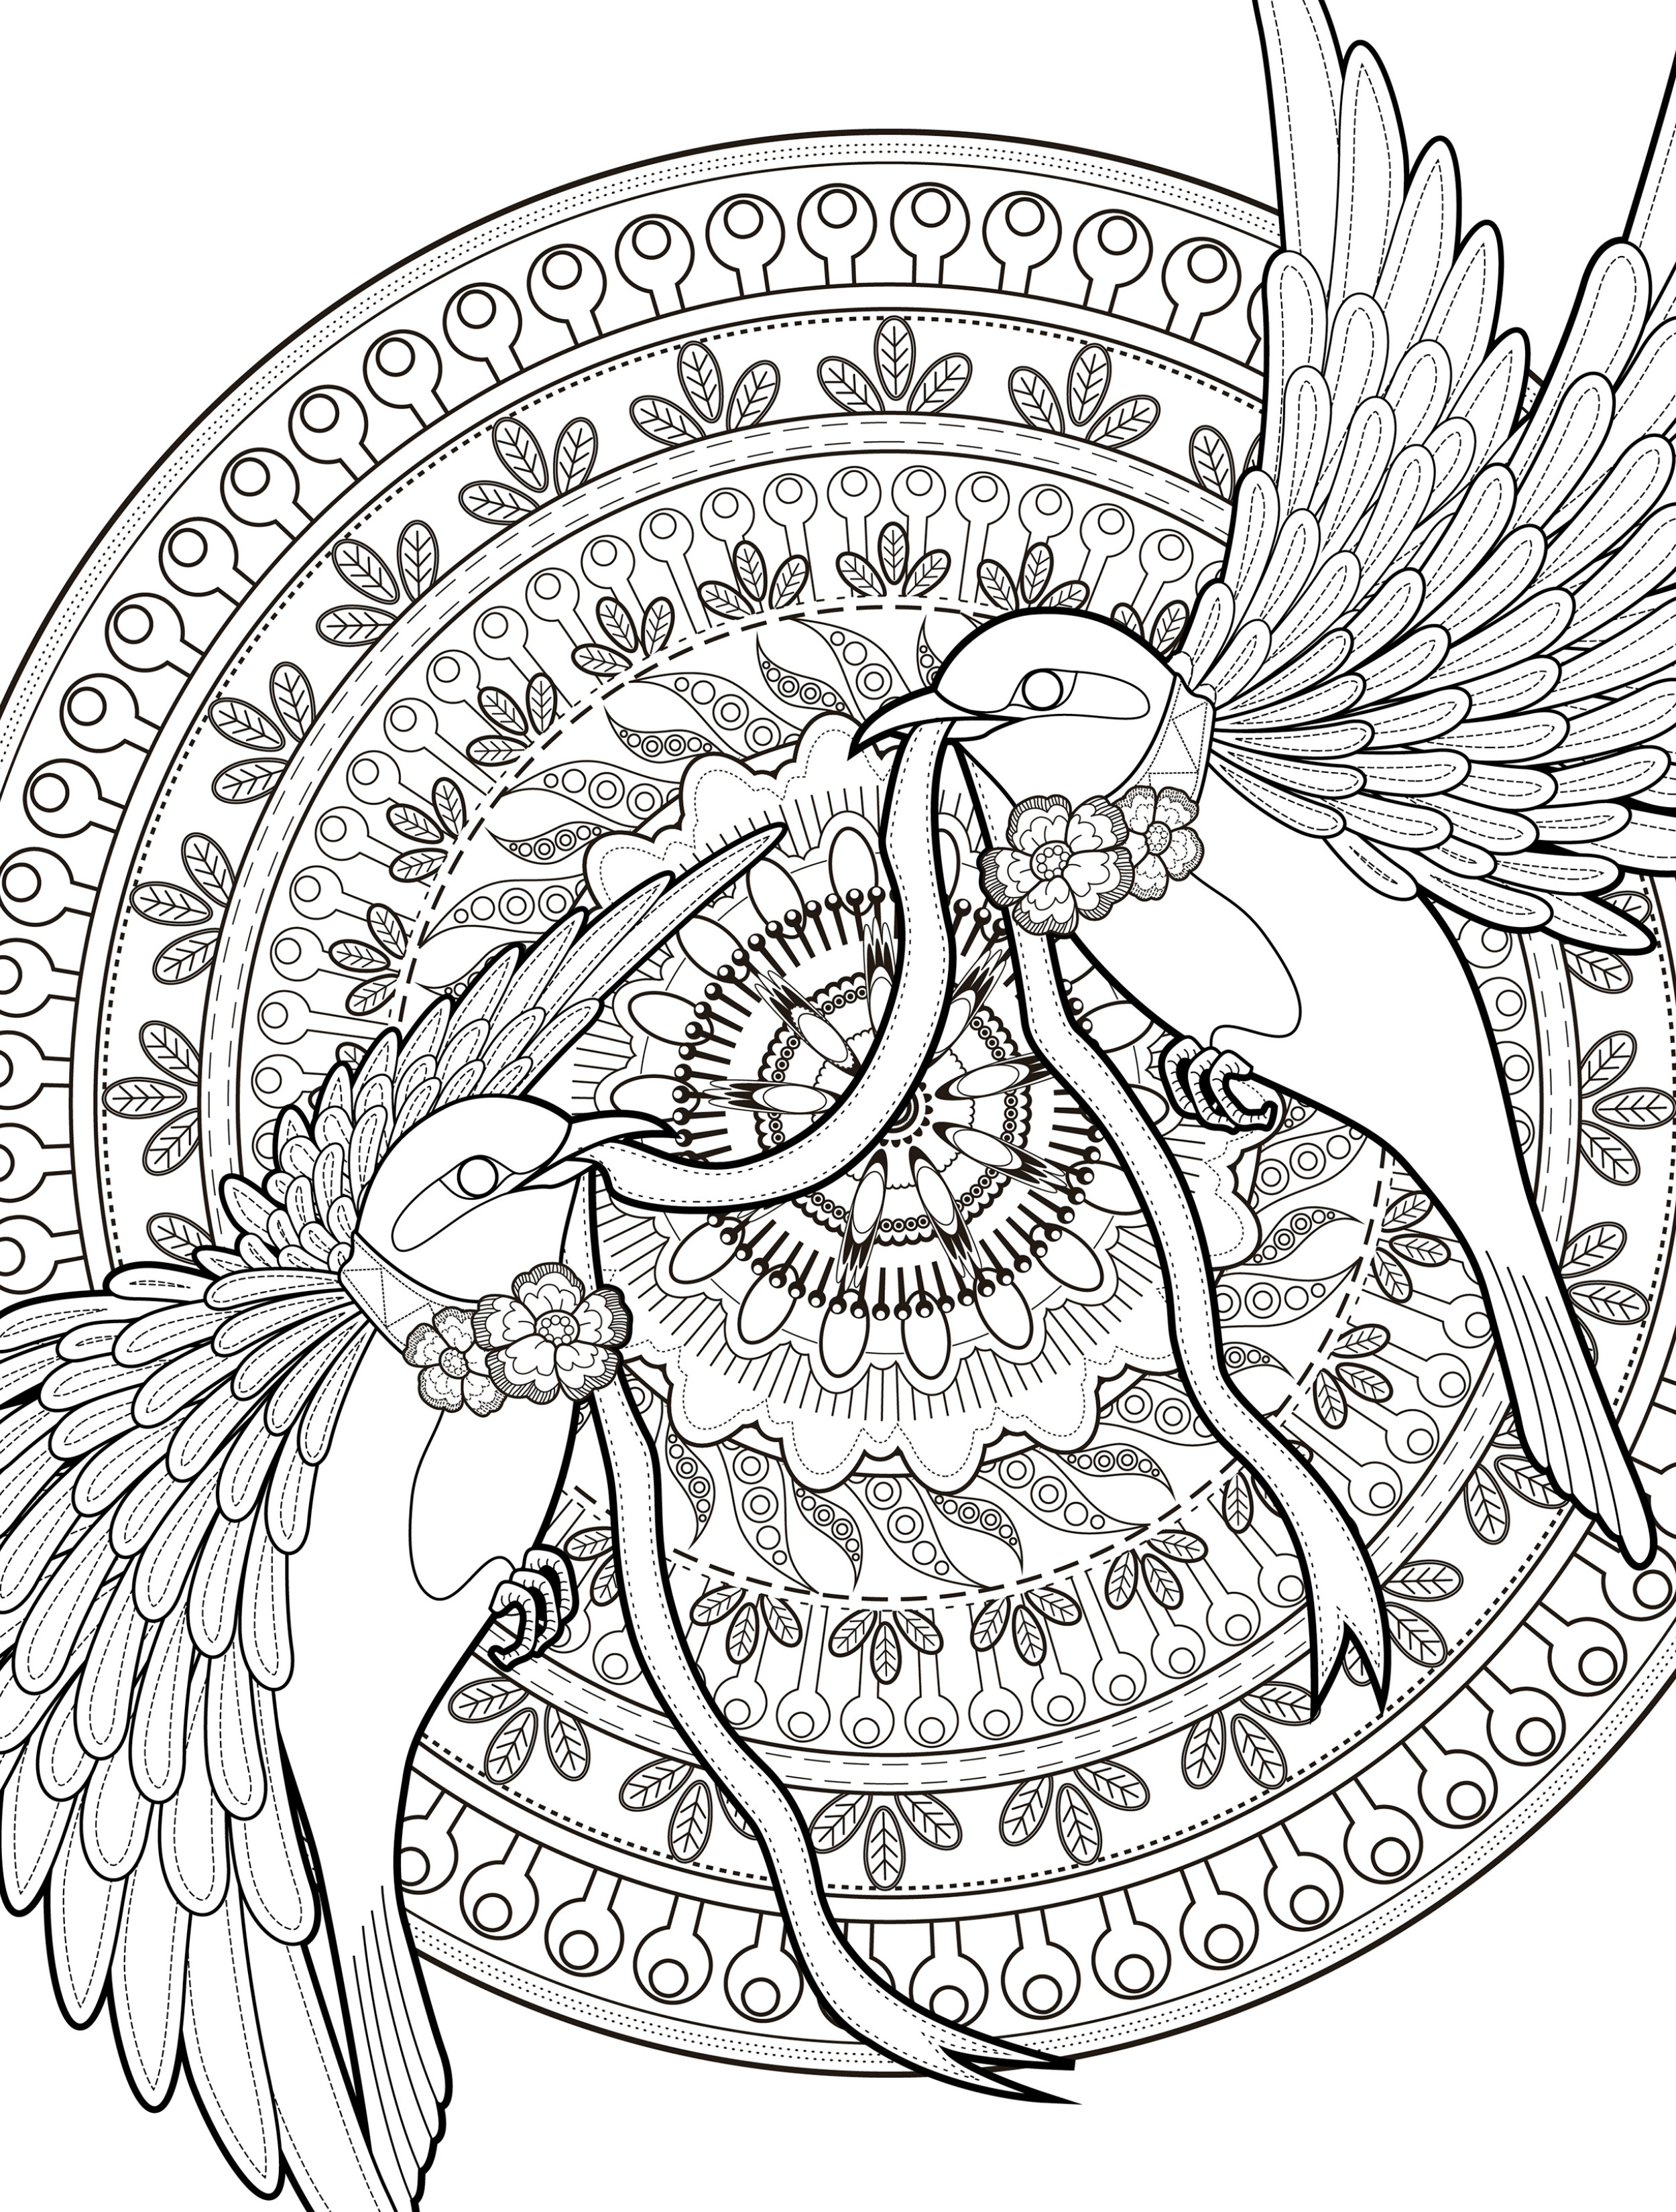 2500x3300 Bird Coloring Pages For Adults Bird Coloring Pages For Adults Free